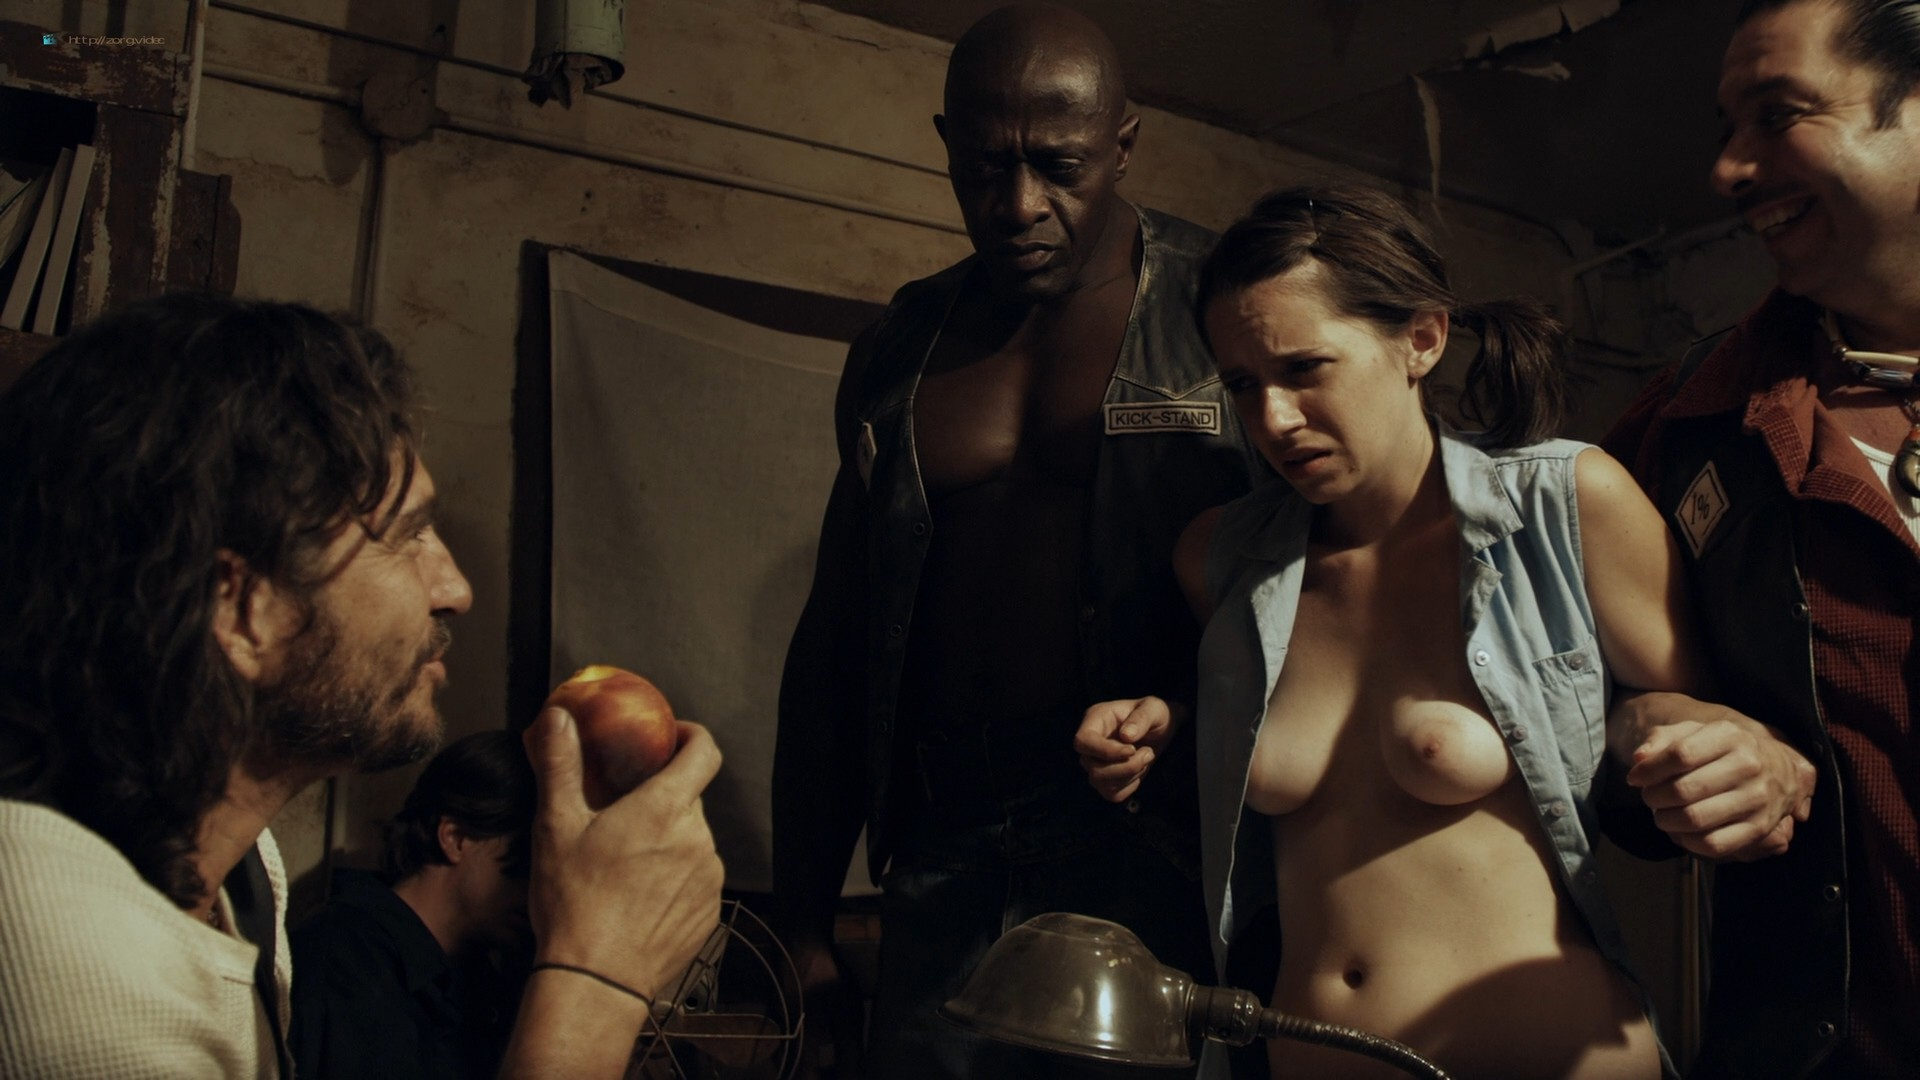 Asun Ortega nude Tiffany Cache and others nude full frontal and sex - Nude Nuns with Big Guns (2010) HD 1080p BluRay (15)